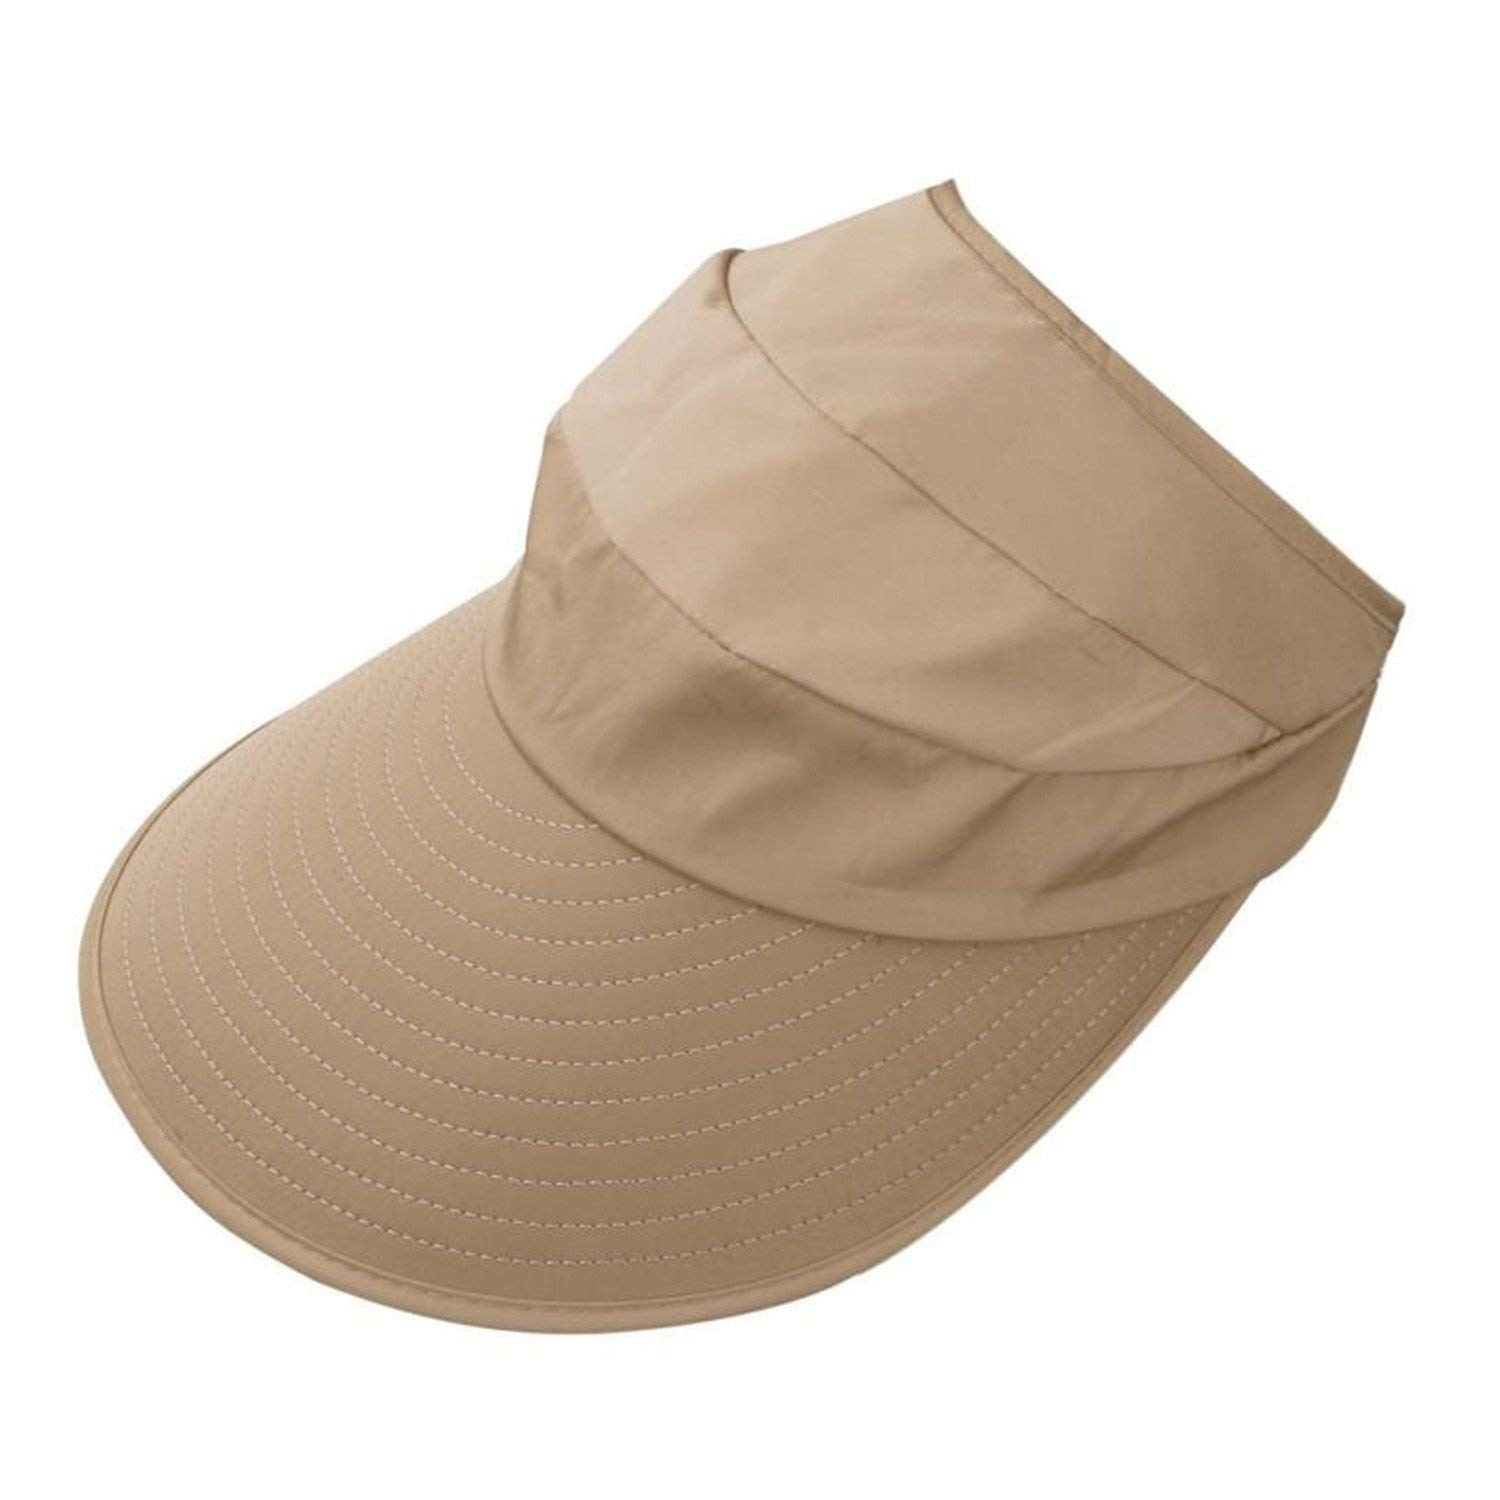 2c464133 Get Quotations · Solme New Women Summer Sun Hats Sun Visor Sun Hats with Big  Heads Solid Nylon Fastener